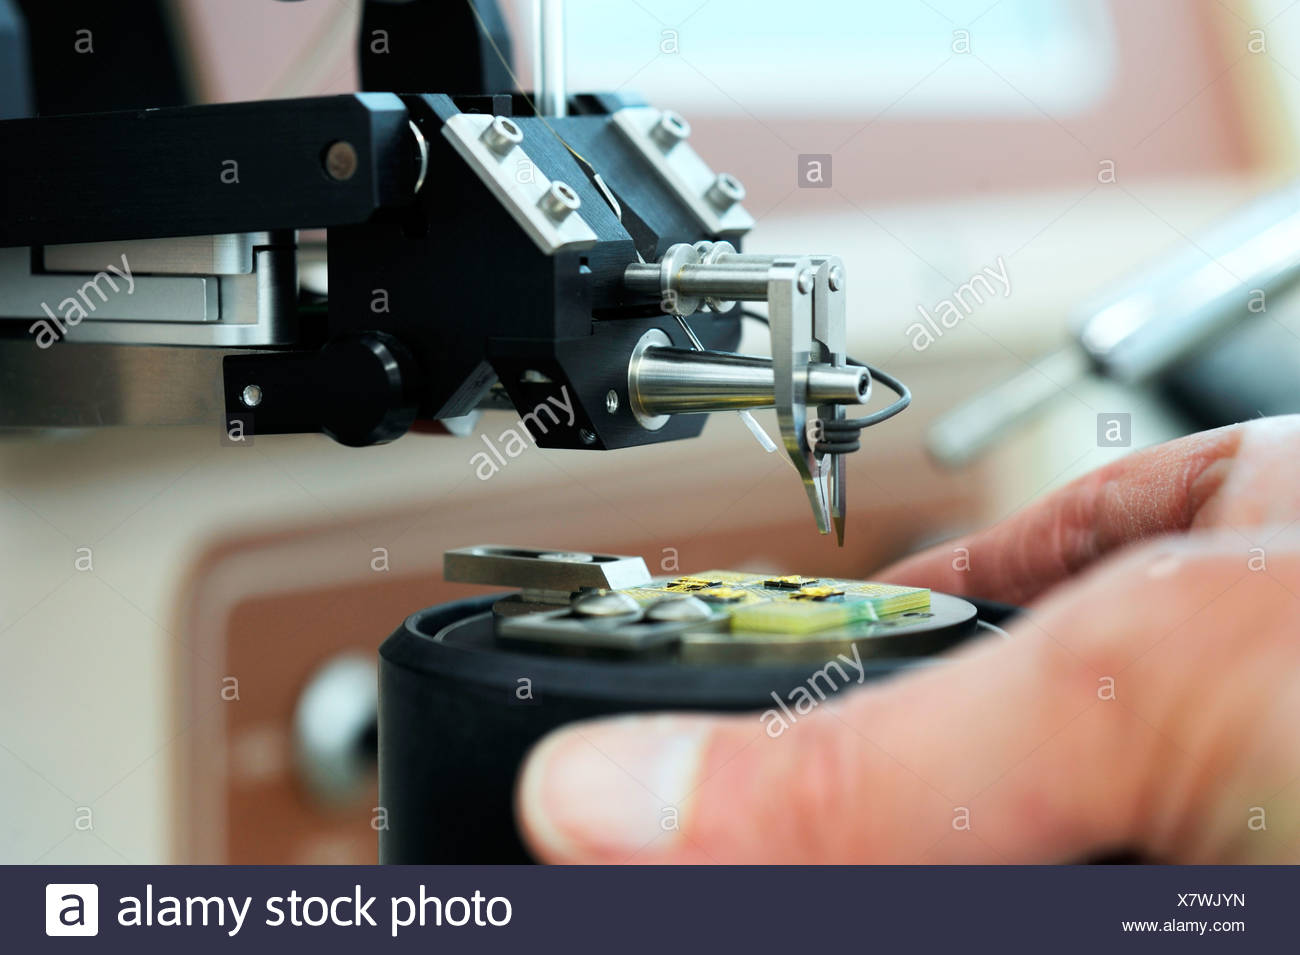 Technician adjusting a device to carry out a physical experiment - Stock Image